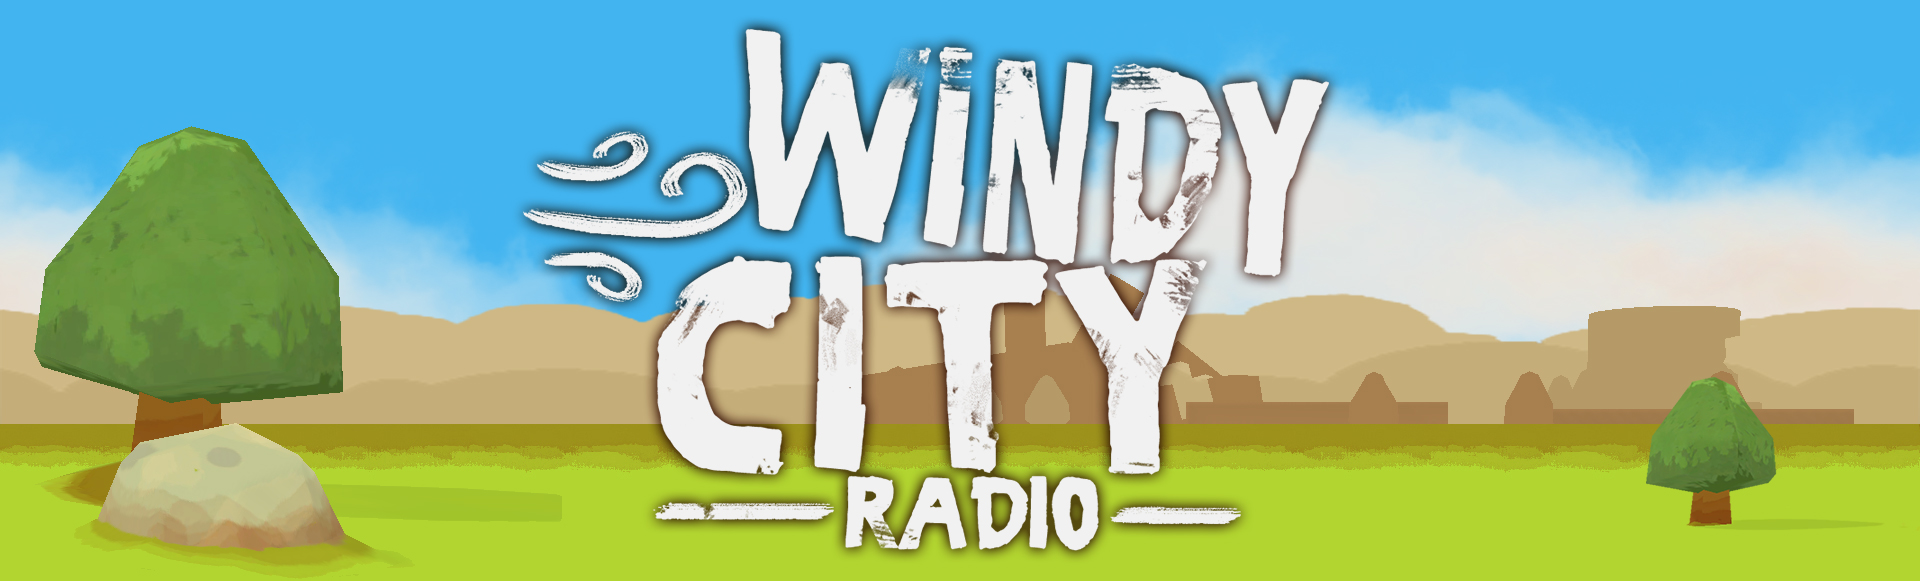 Windy City Radio - Jam Version.